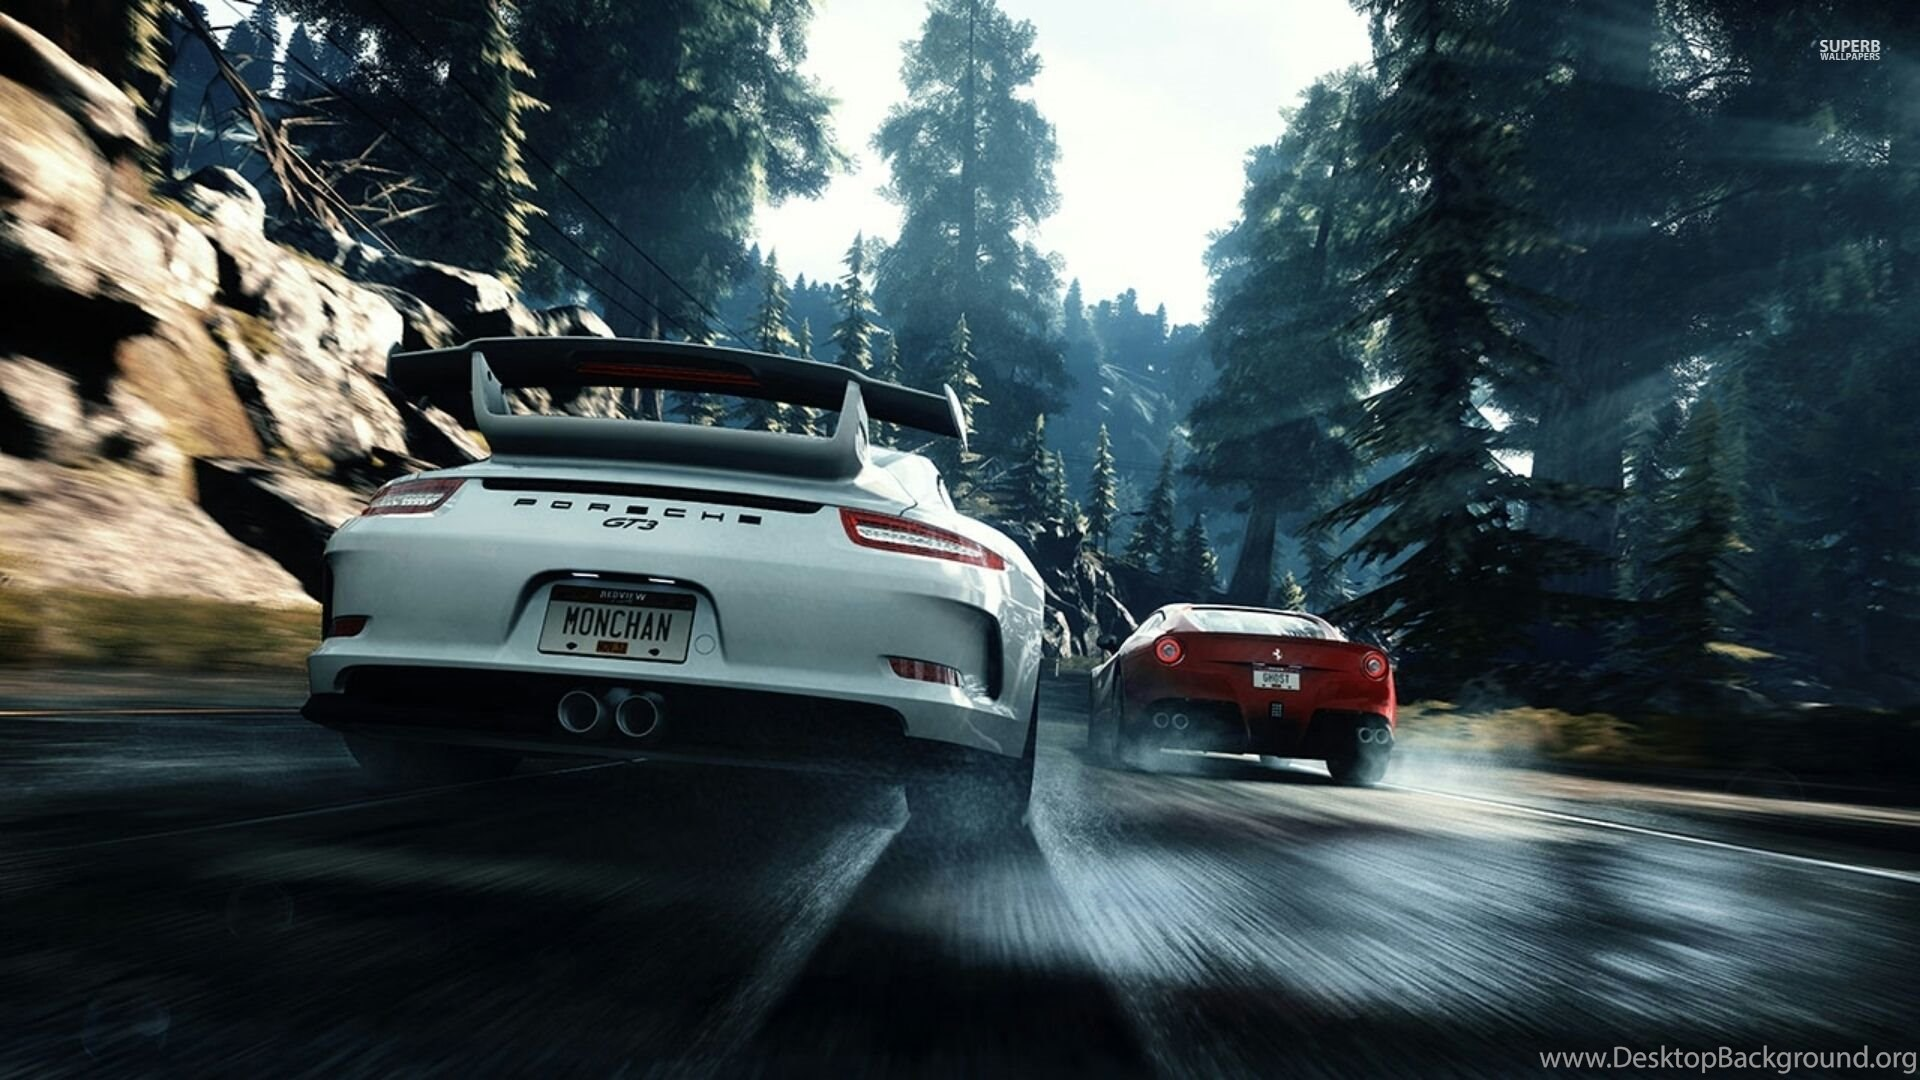 need for speed rivals game games 1920x1080 hd. Black Bedroom Furniture Sets. Home Design Ideas